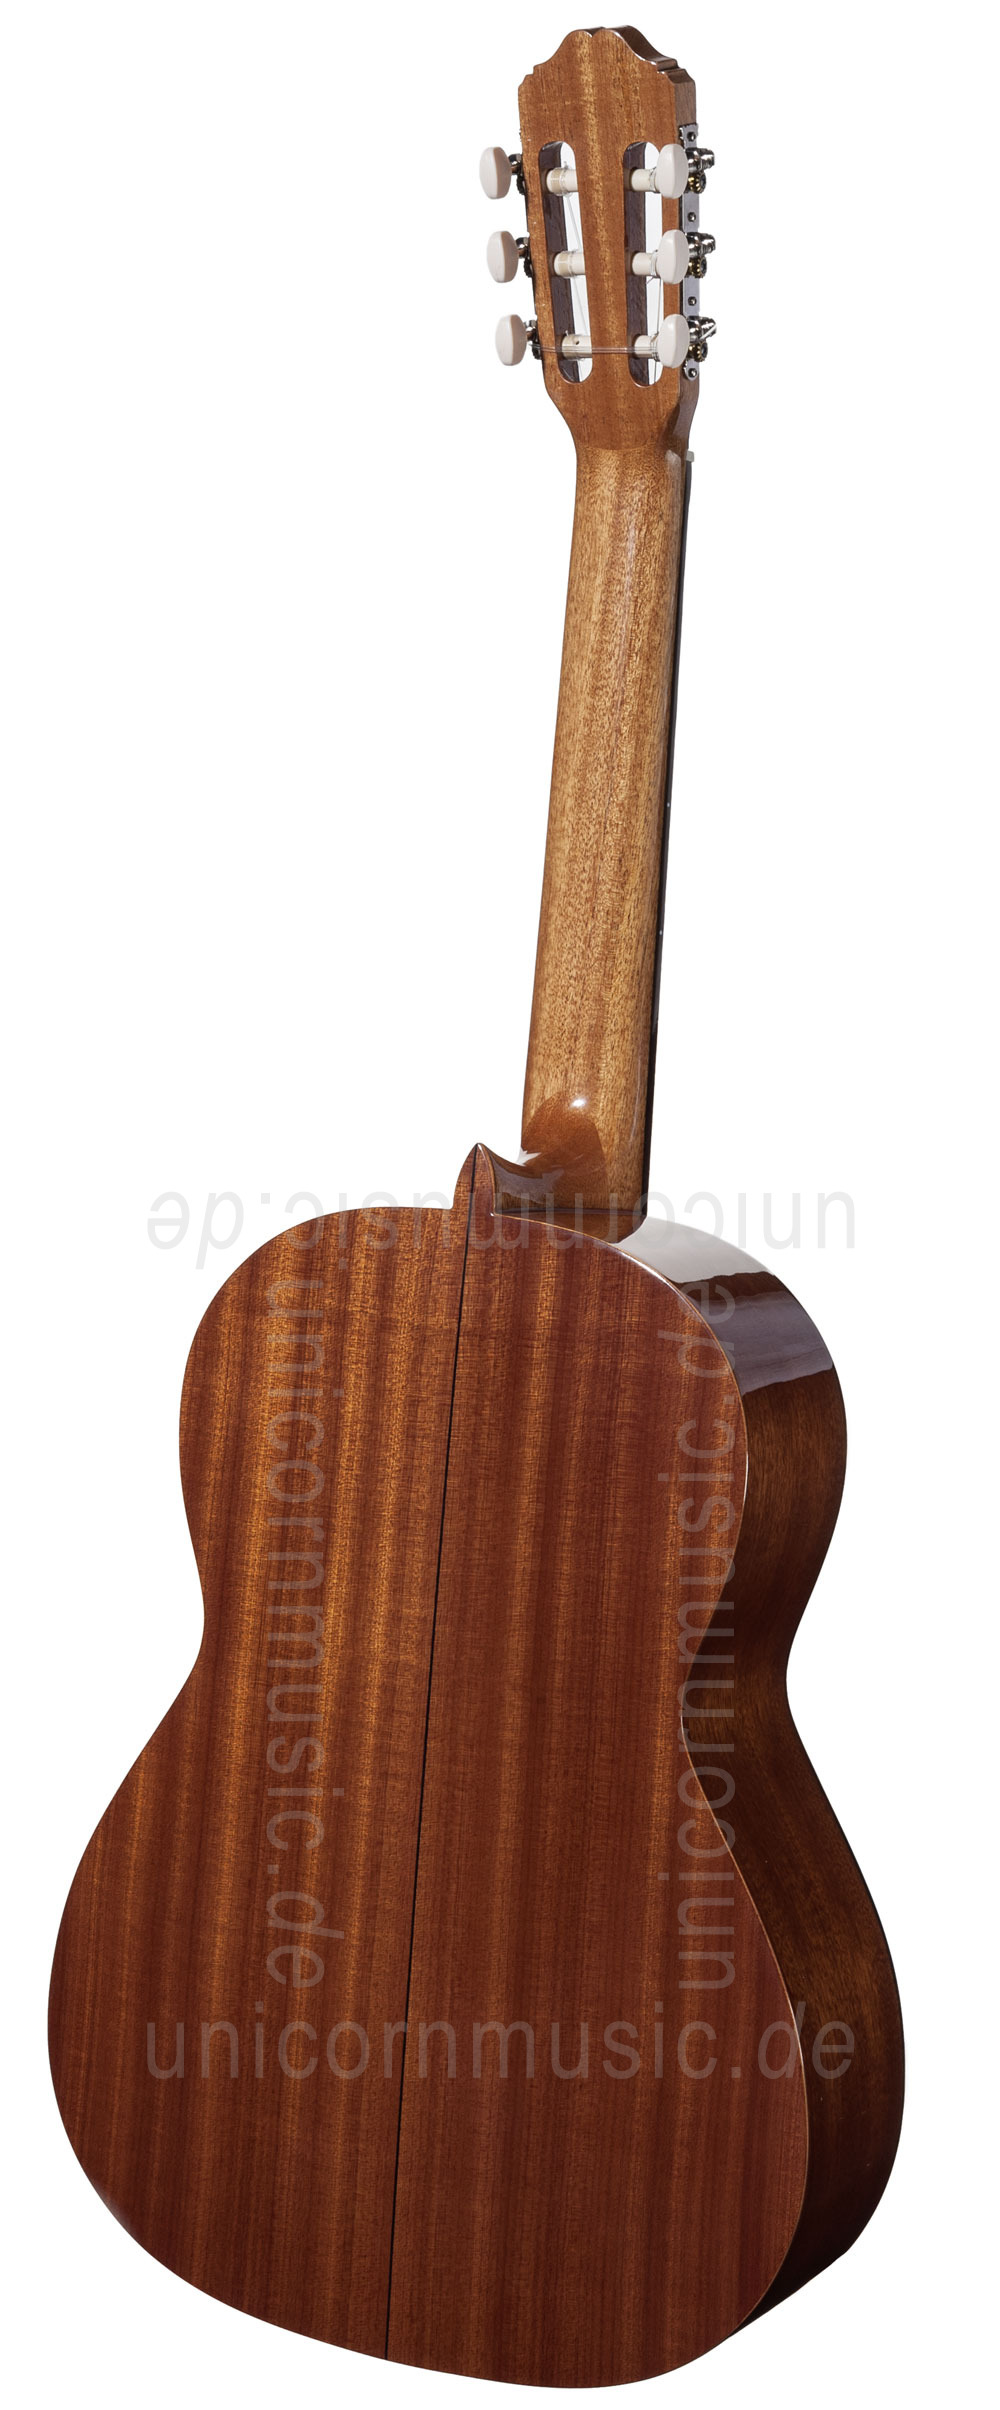 to article description / price Spanish Classical Guitar VALDEZ MODEL E - solid cedar top